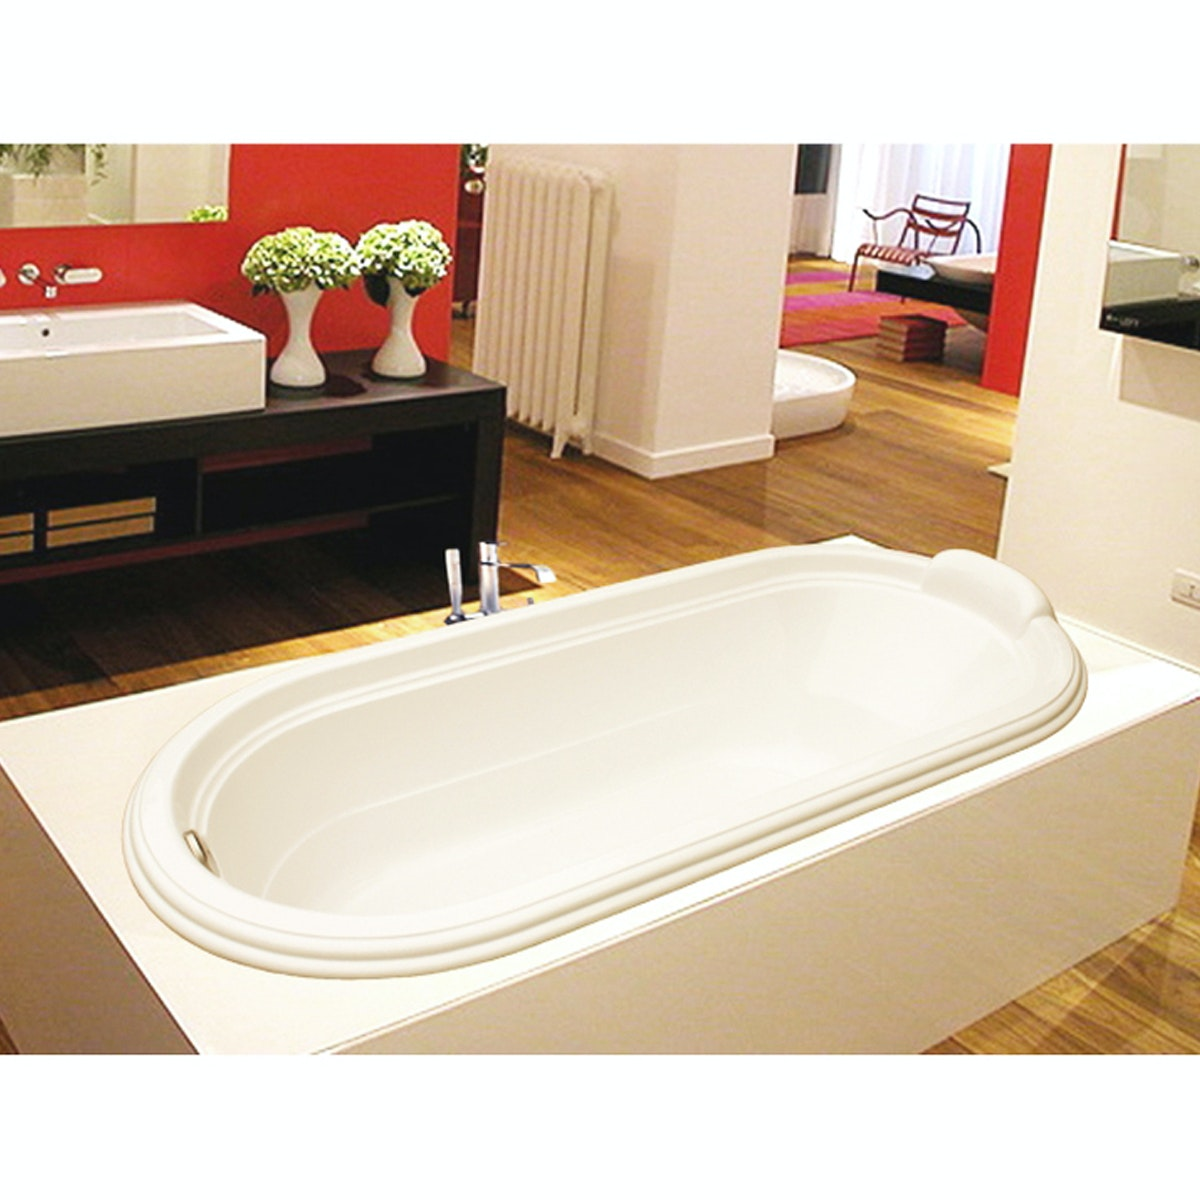 Chrysolite Bathtub Clementine 172